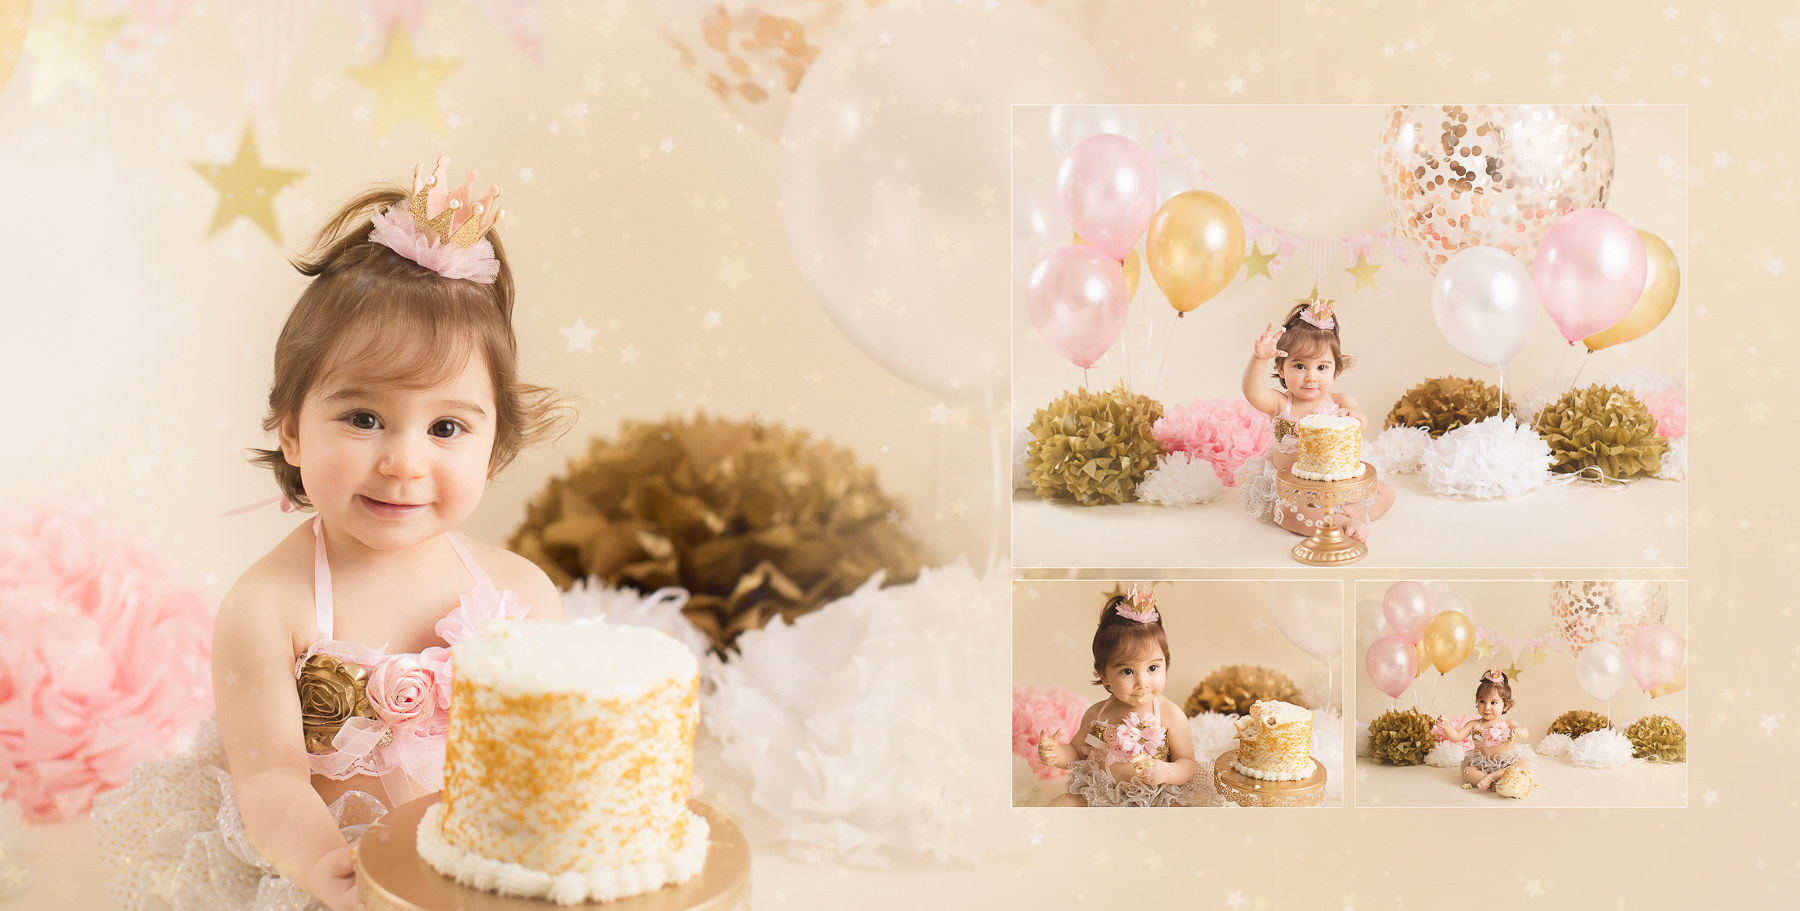 cake smash photography gold theme - girl